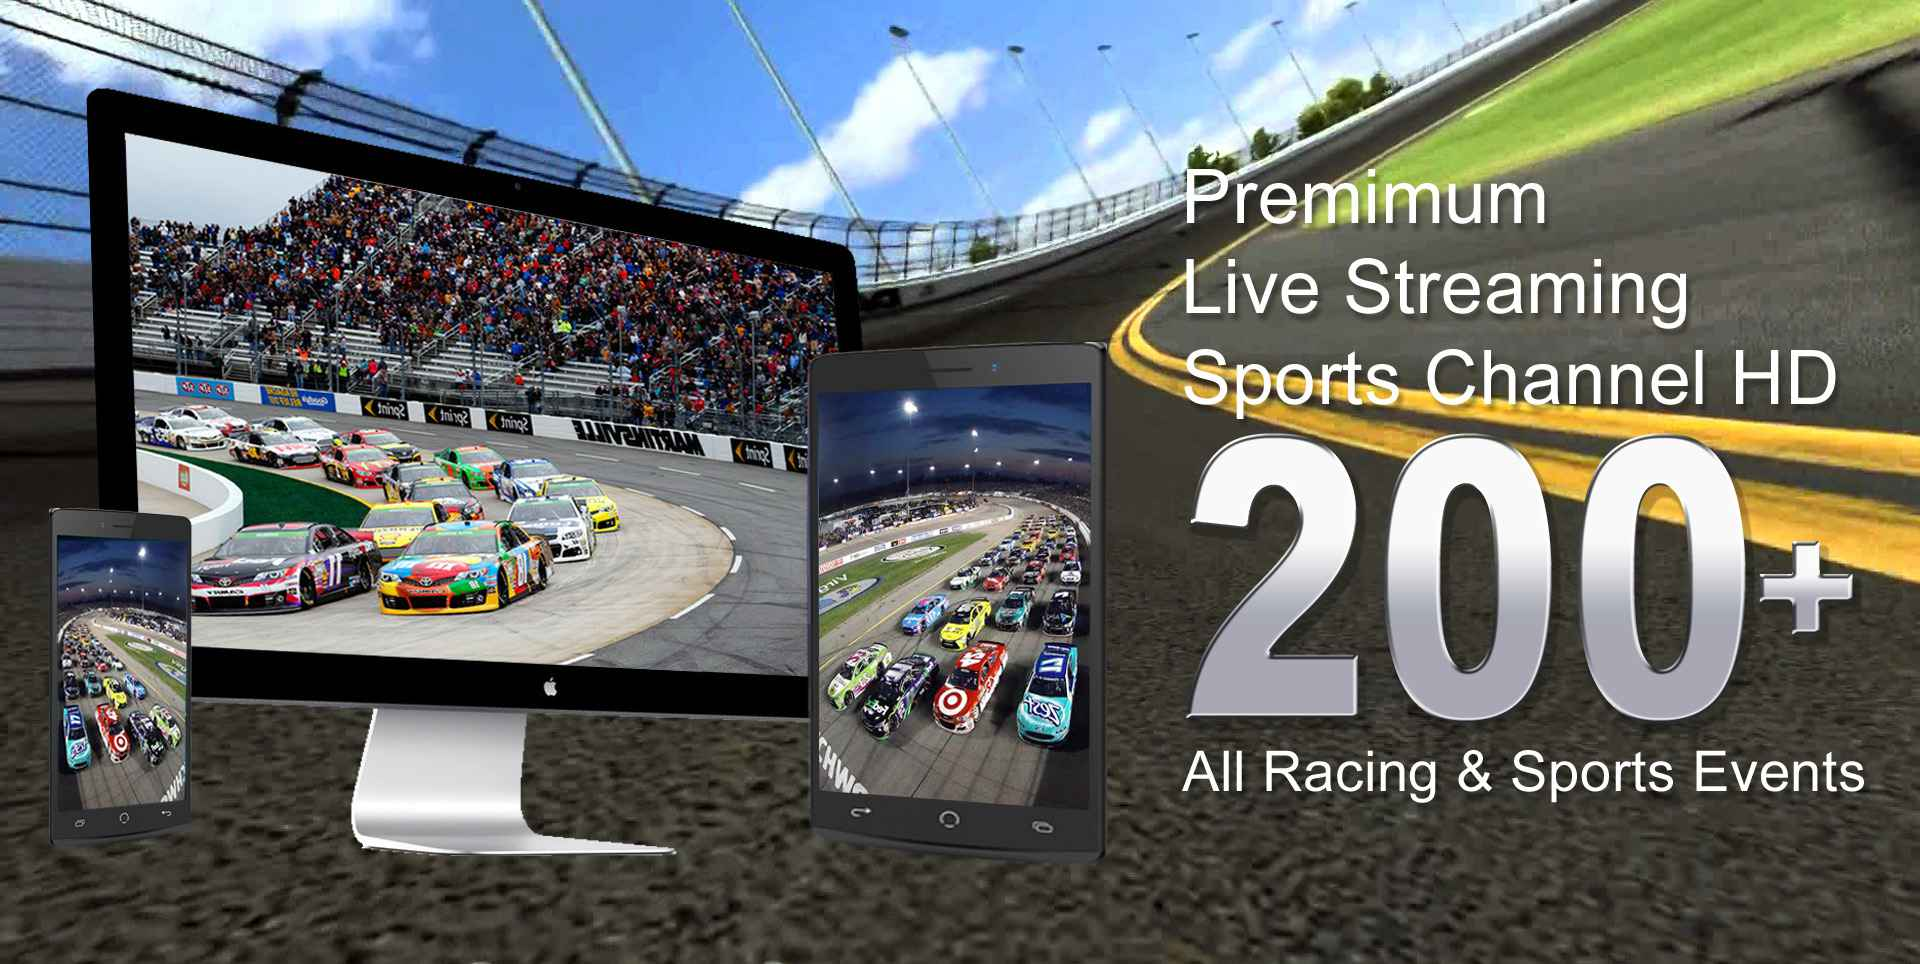 Nascar Goodys Headache Relief Shot 500 Race Online